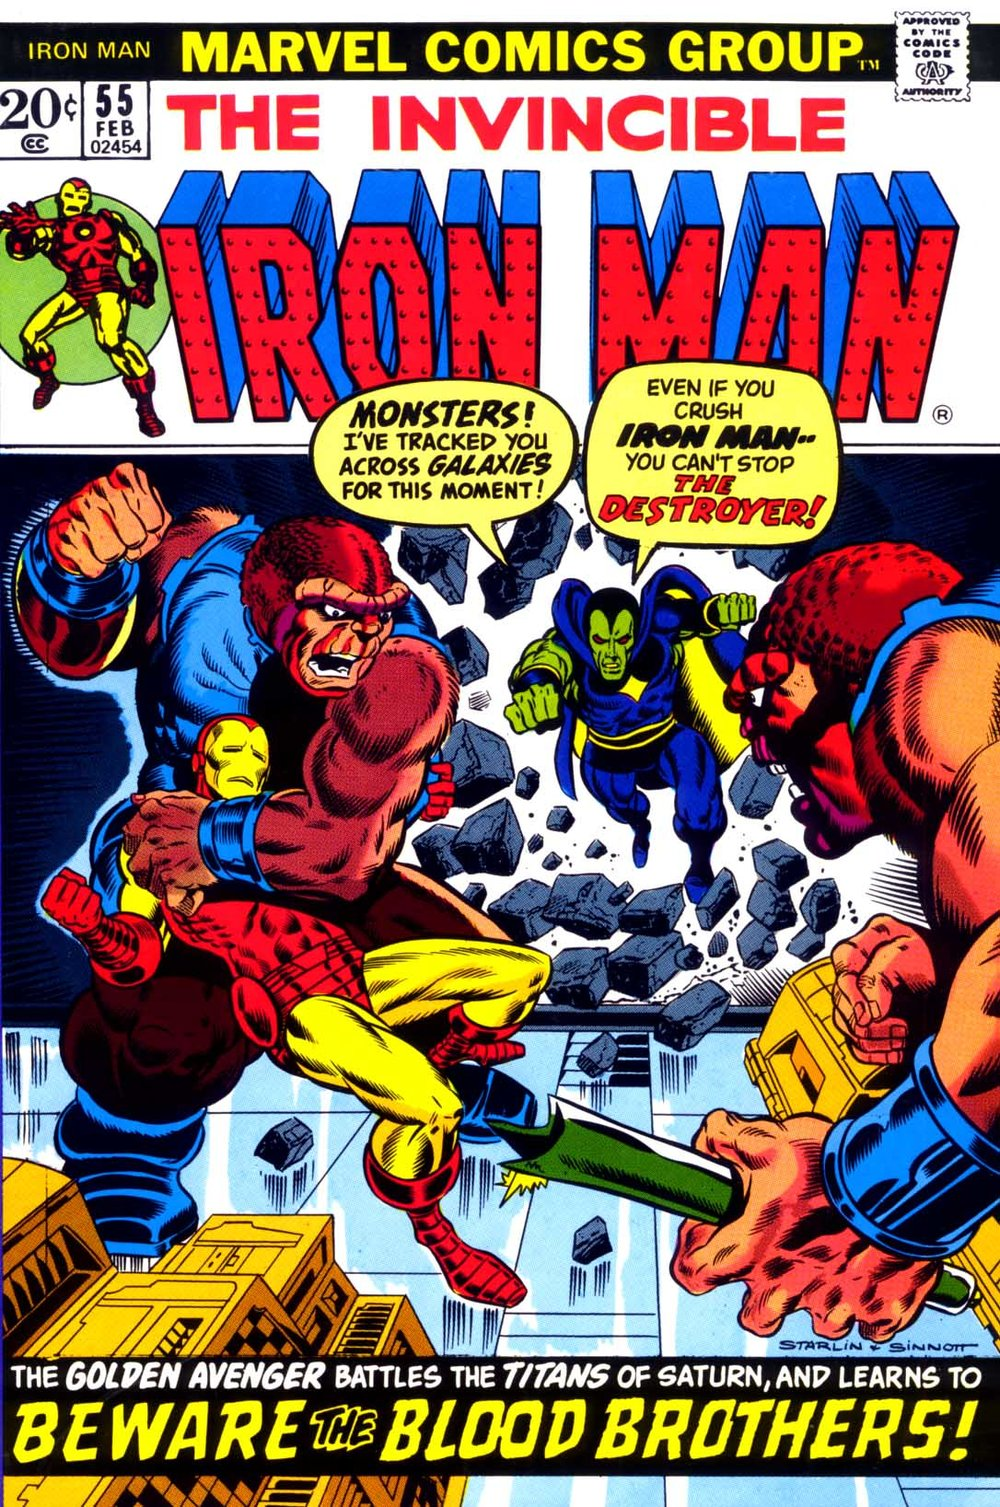 Guest-starring Drax the Destroyer as the Kool-Aid Man!